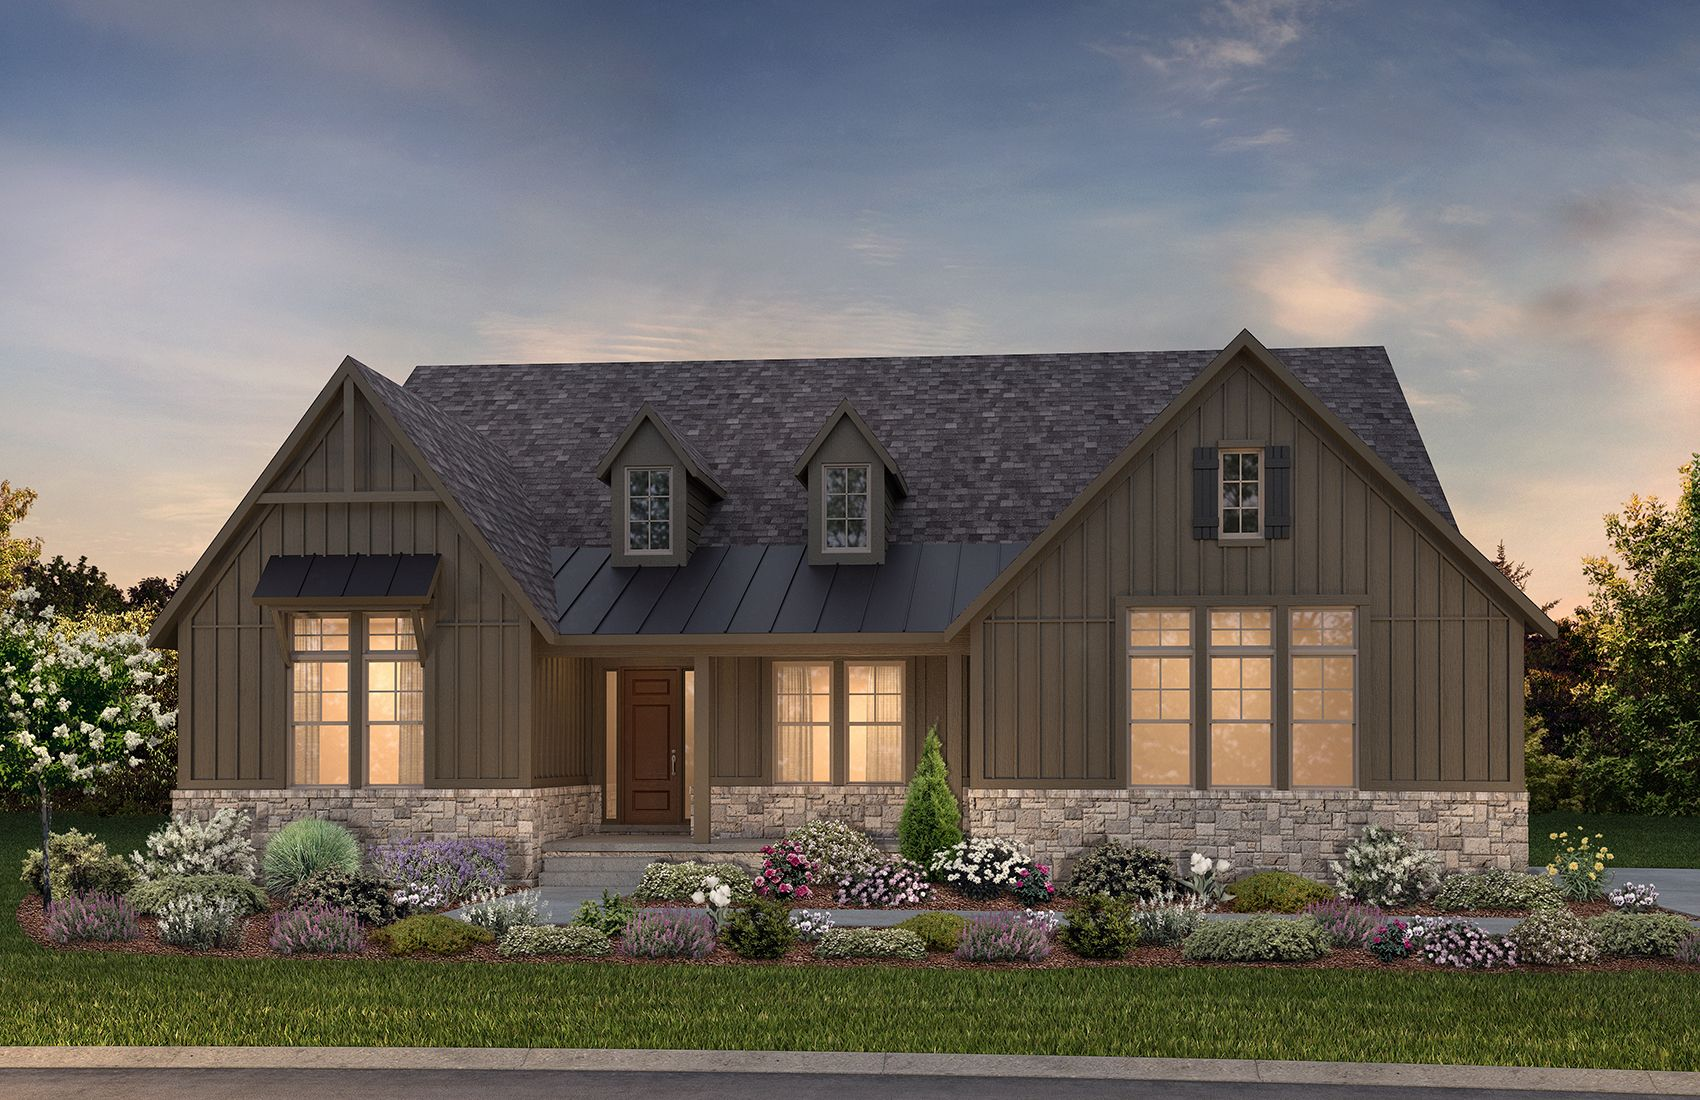 Exterior rendering of ranch home:Hickory Modern Farm